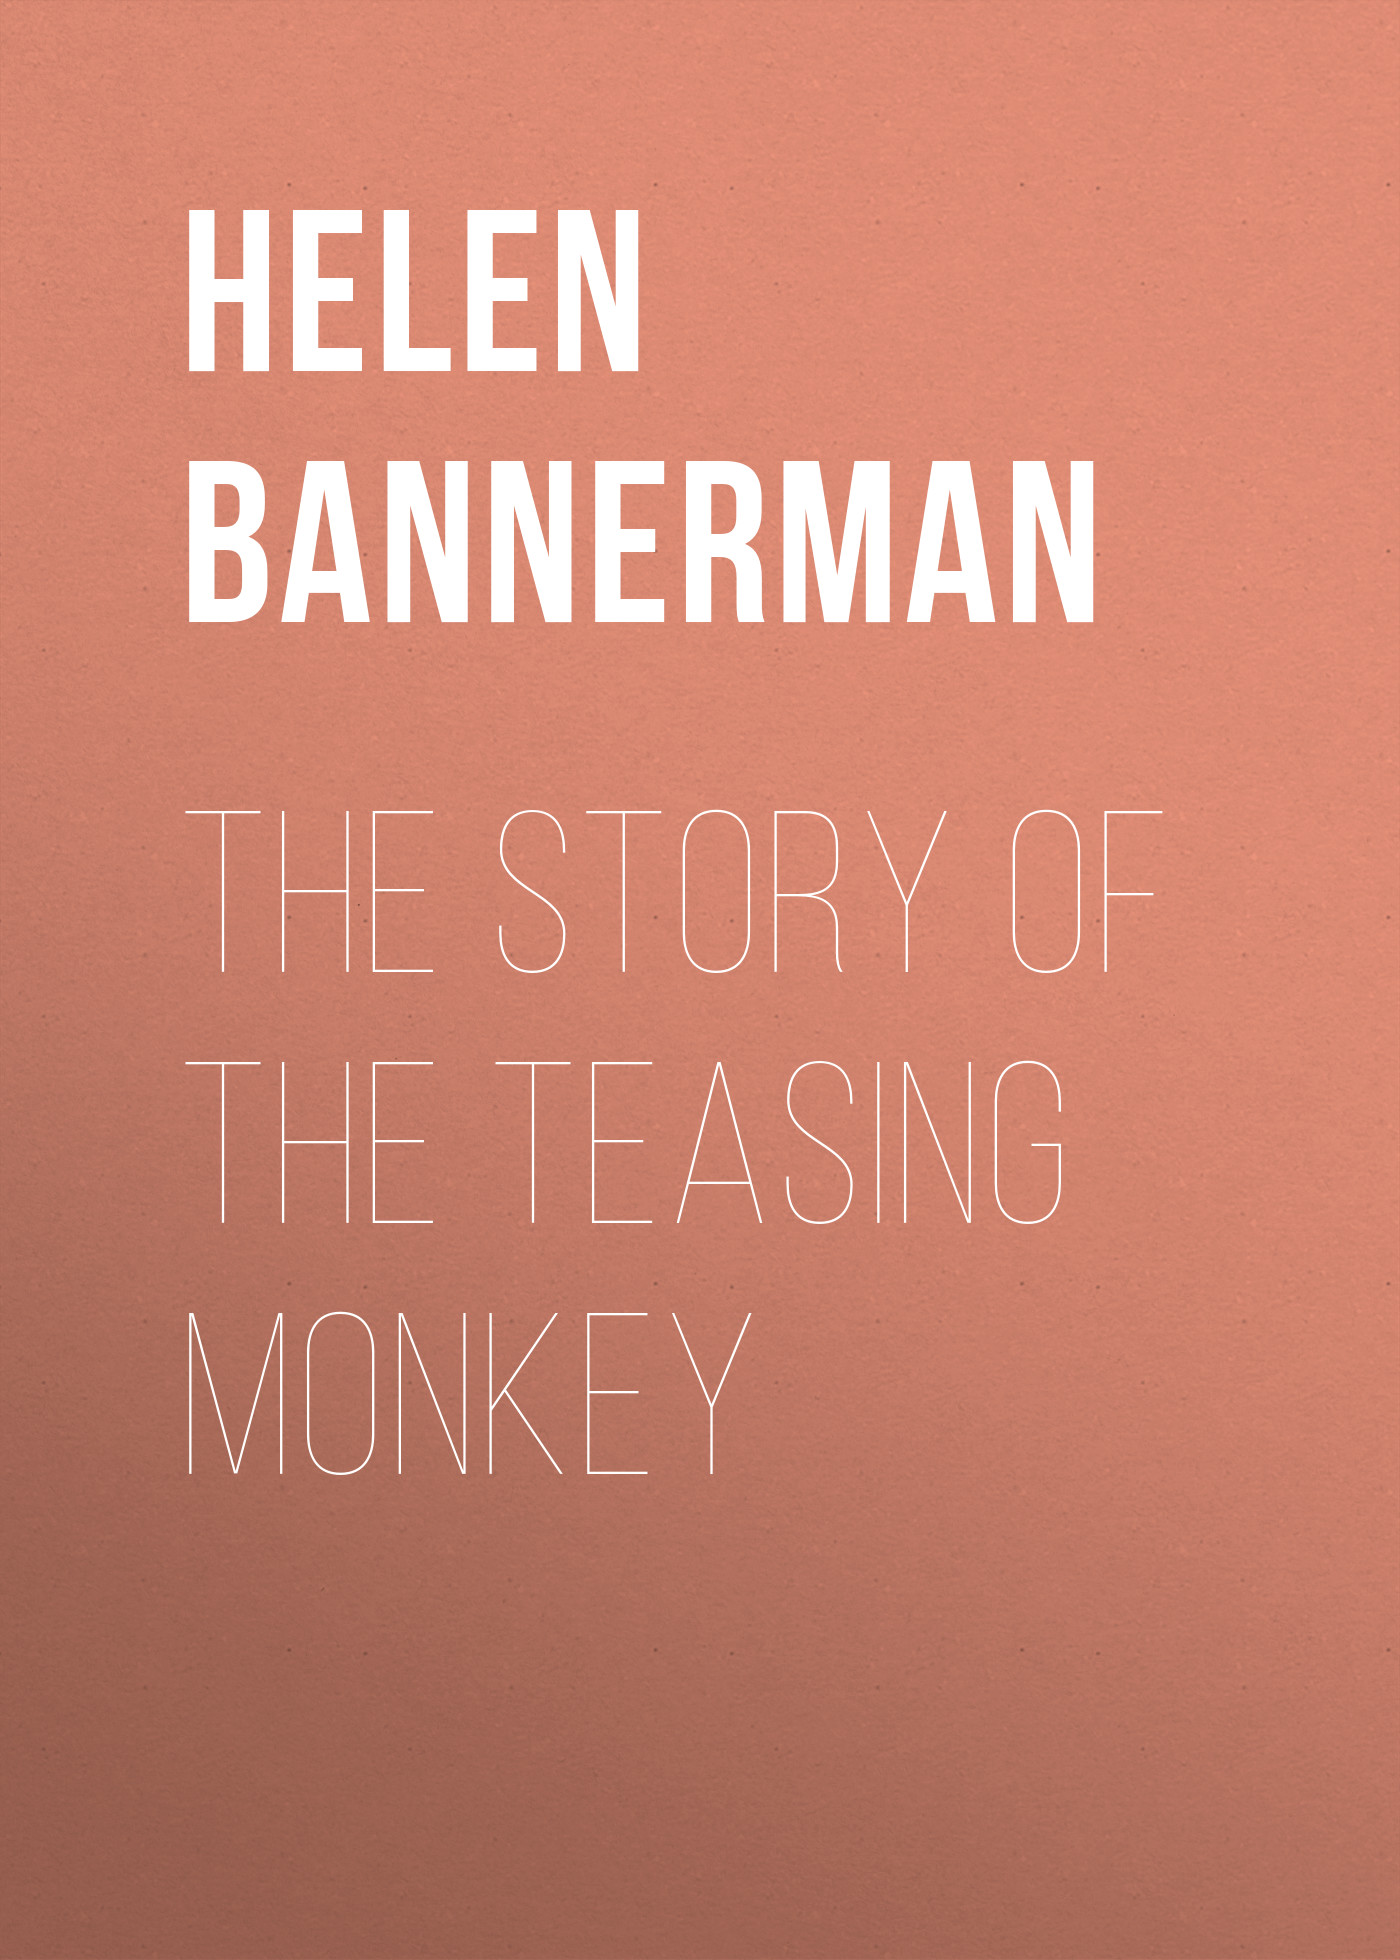 Bannerman Helen The Story of the Teasing Monkey helen chapel essentials of clinical immunology